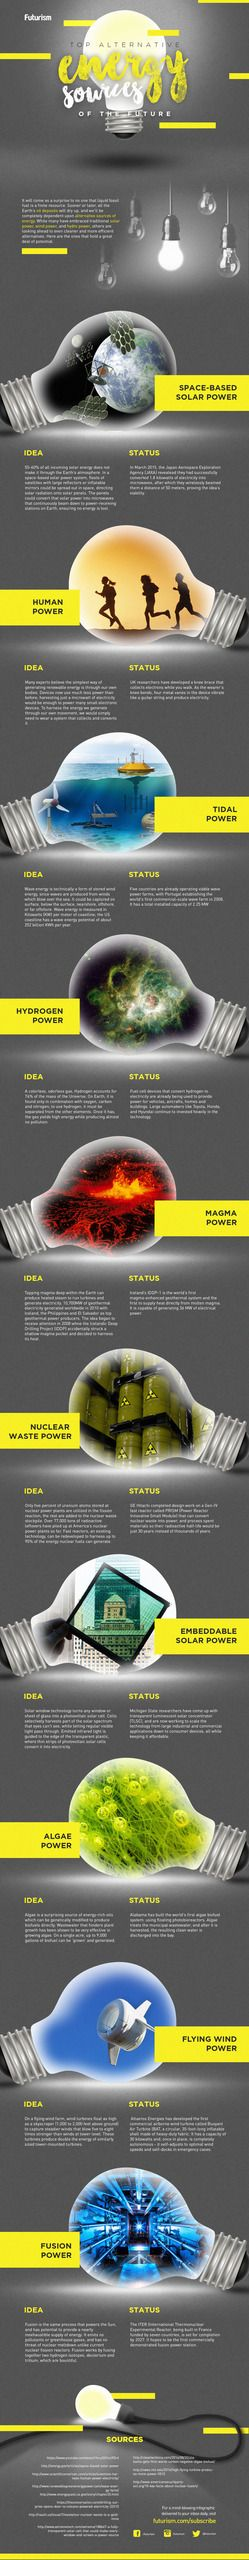 Flying Wind Farms, Solar Windows, and... Magma Power? This is the future of renewable energy.  http://futurism.com/images/renewable-energy-sources-of-the-future-infographic/?utm_campaign=coschedule&utm_source=pinterest&utm_medium=Futurism&utm_content=Renewable%20Energy%20Sources%20Of%20The%20Future%20%5BInfographic%5D